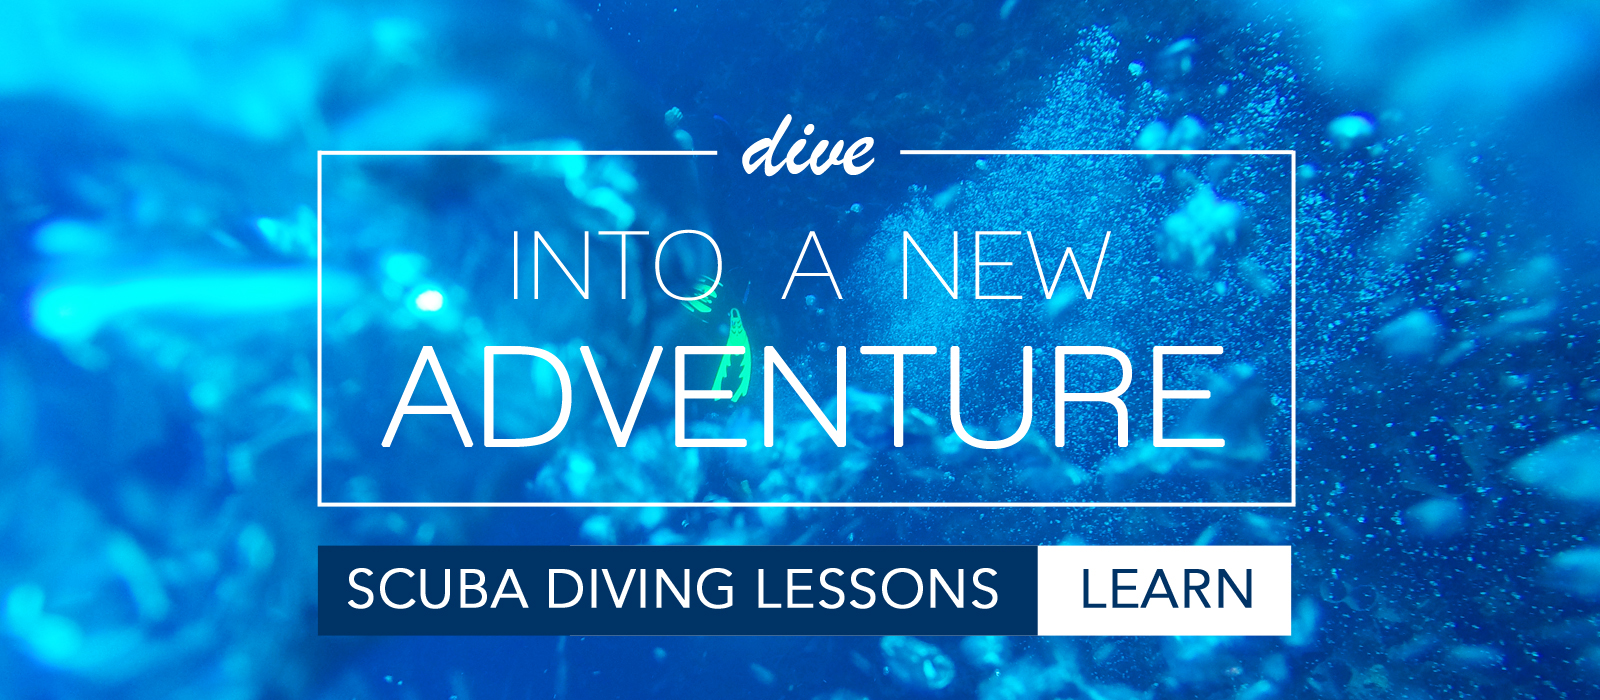 Neptune Scuba Diving Lessons And Certification Nashville Tennessee